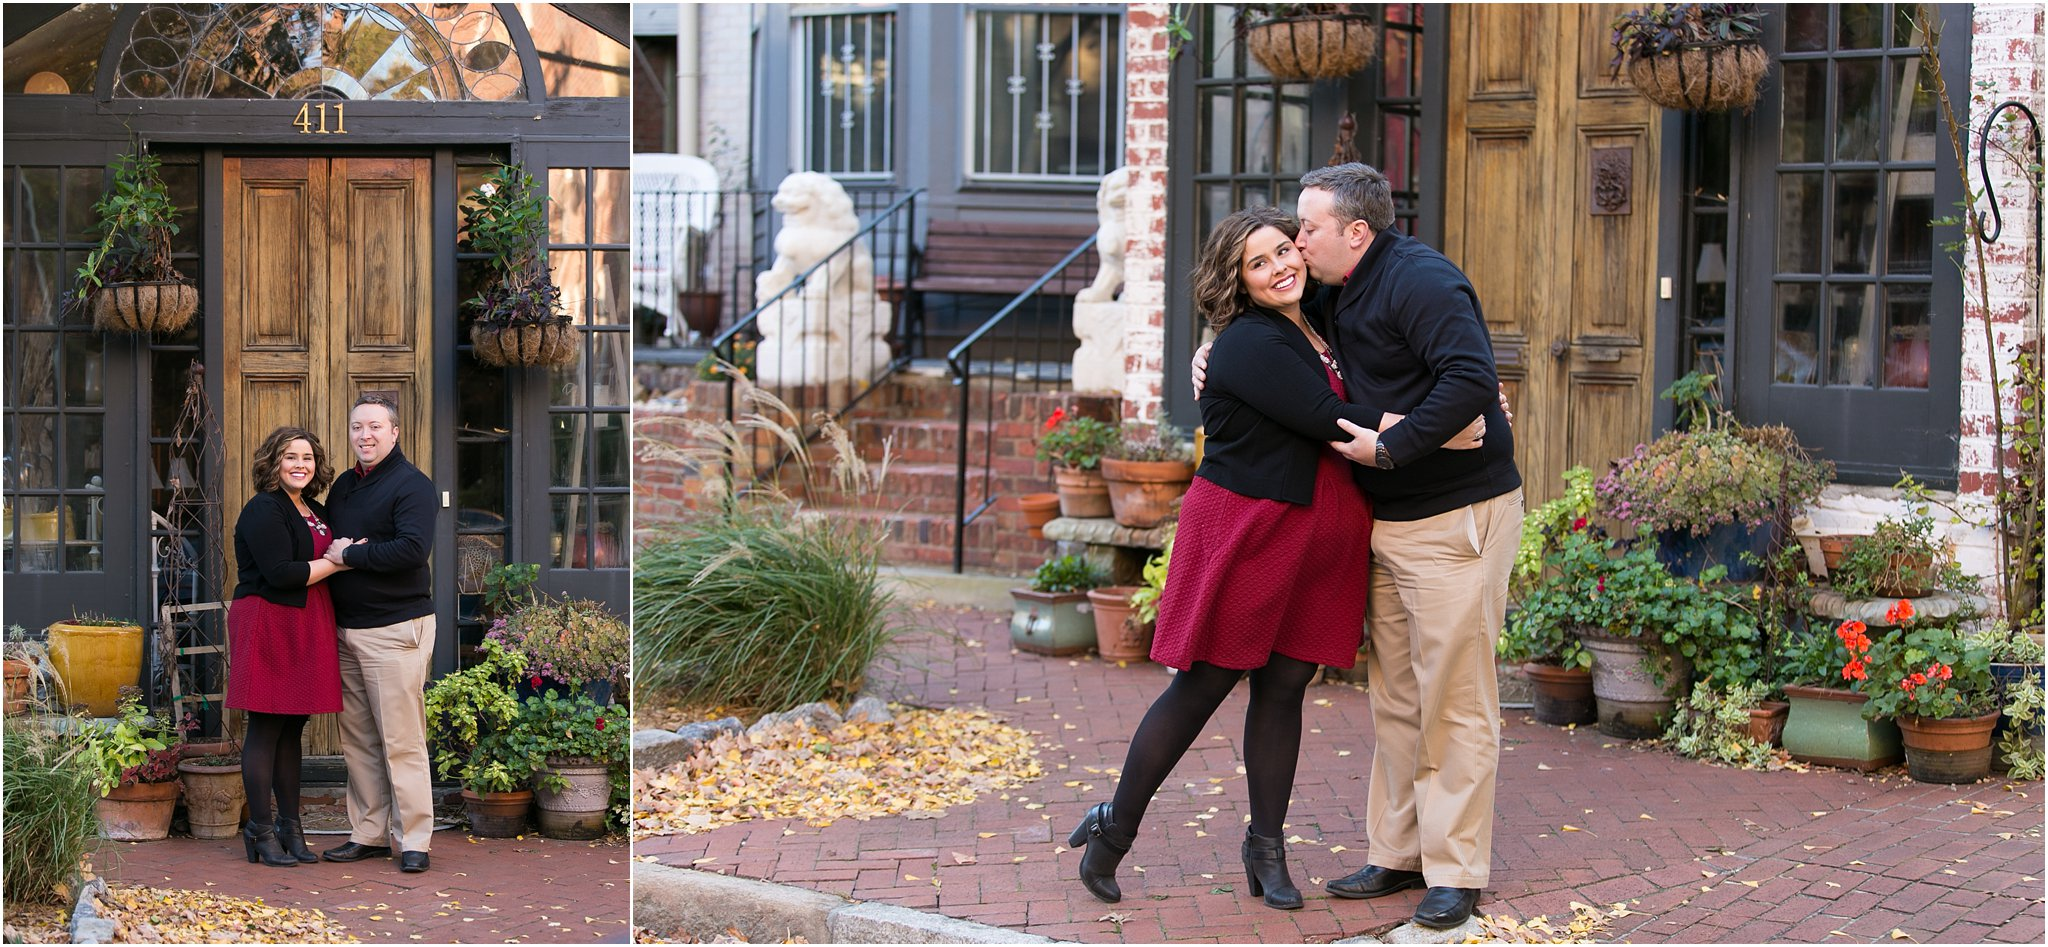 jessica_ryan_photography_engagement_norfolk_candid_virginia_0536